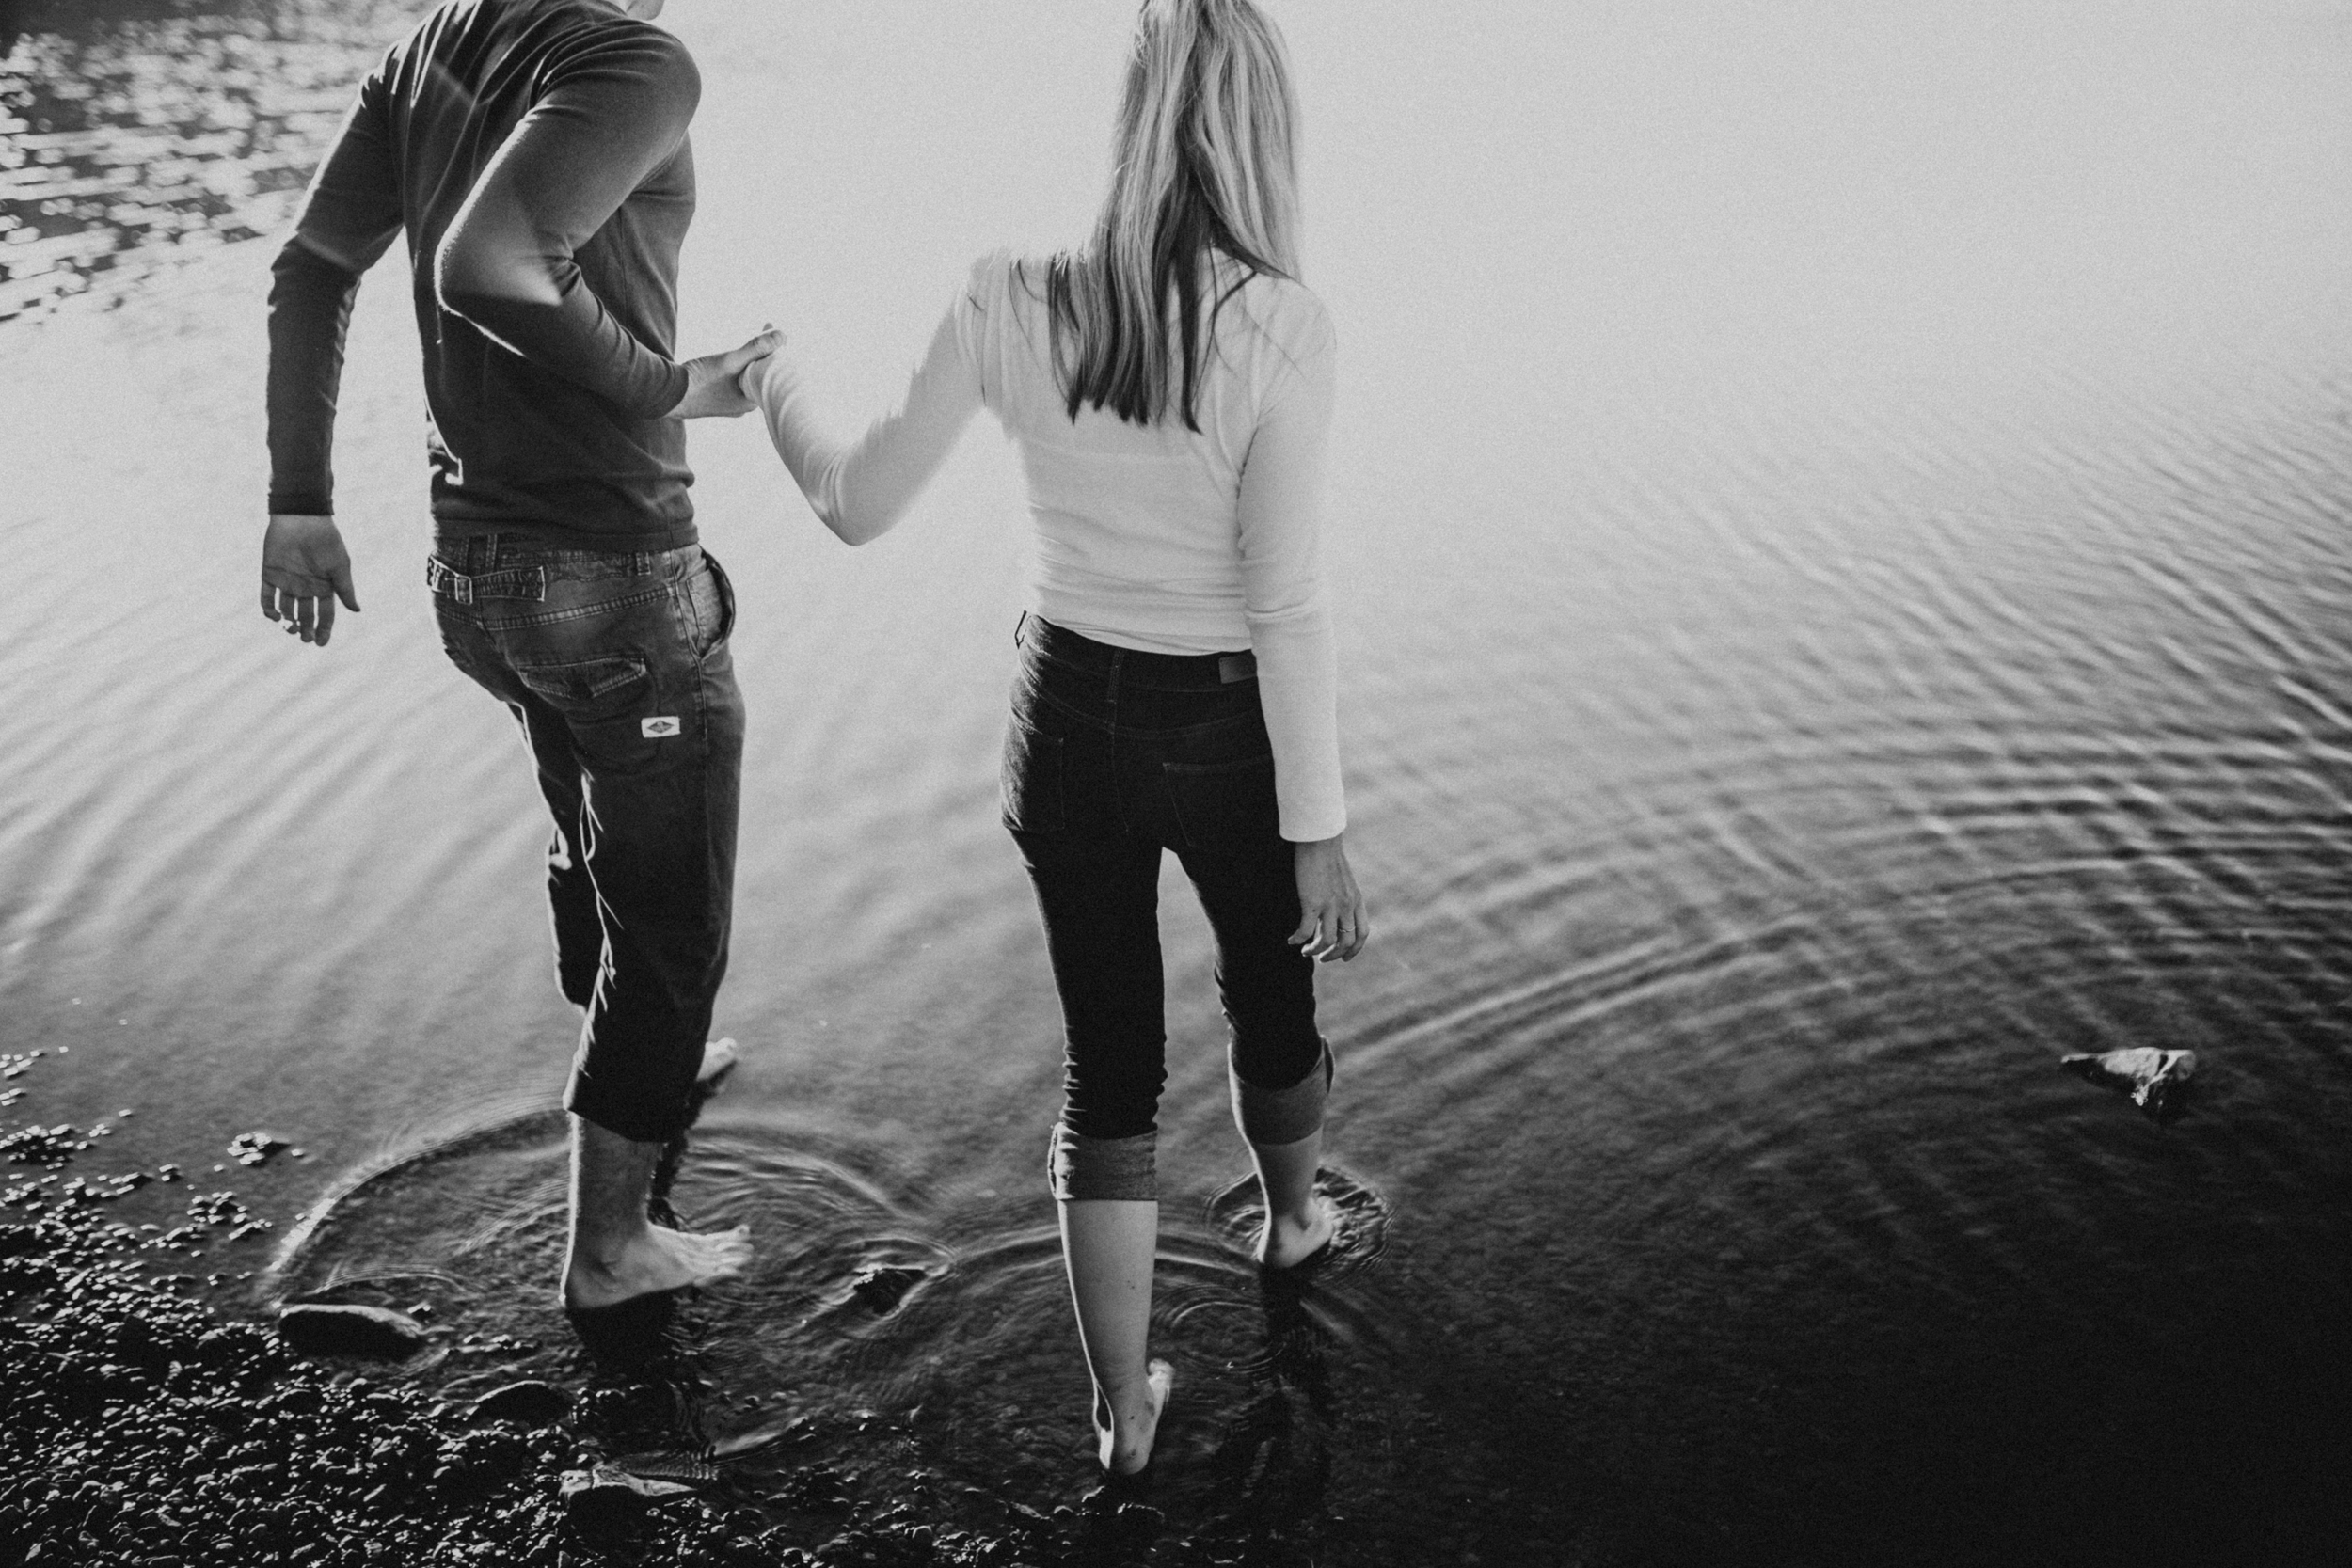 Claire-Clive-Engagement-Shoot-Lake-District-Darina-Stoda-Photography-76.jpg